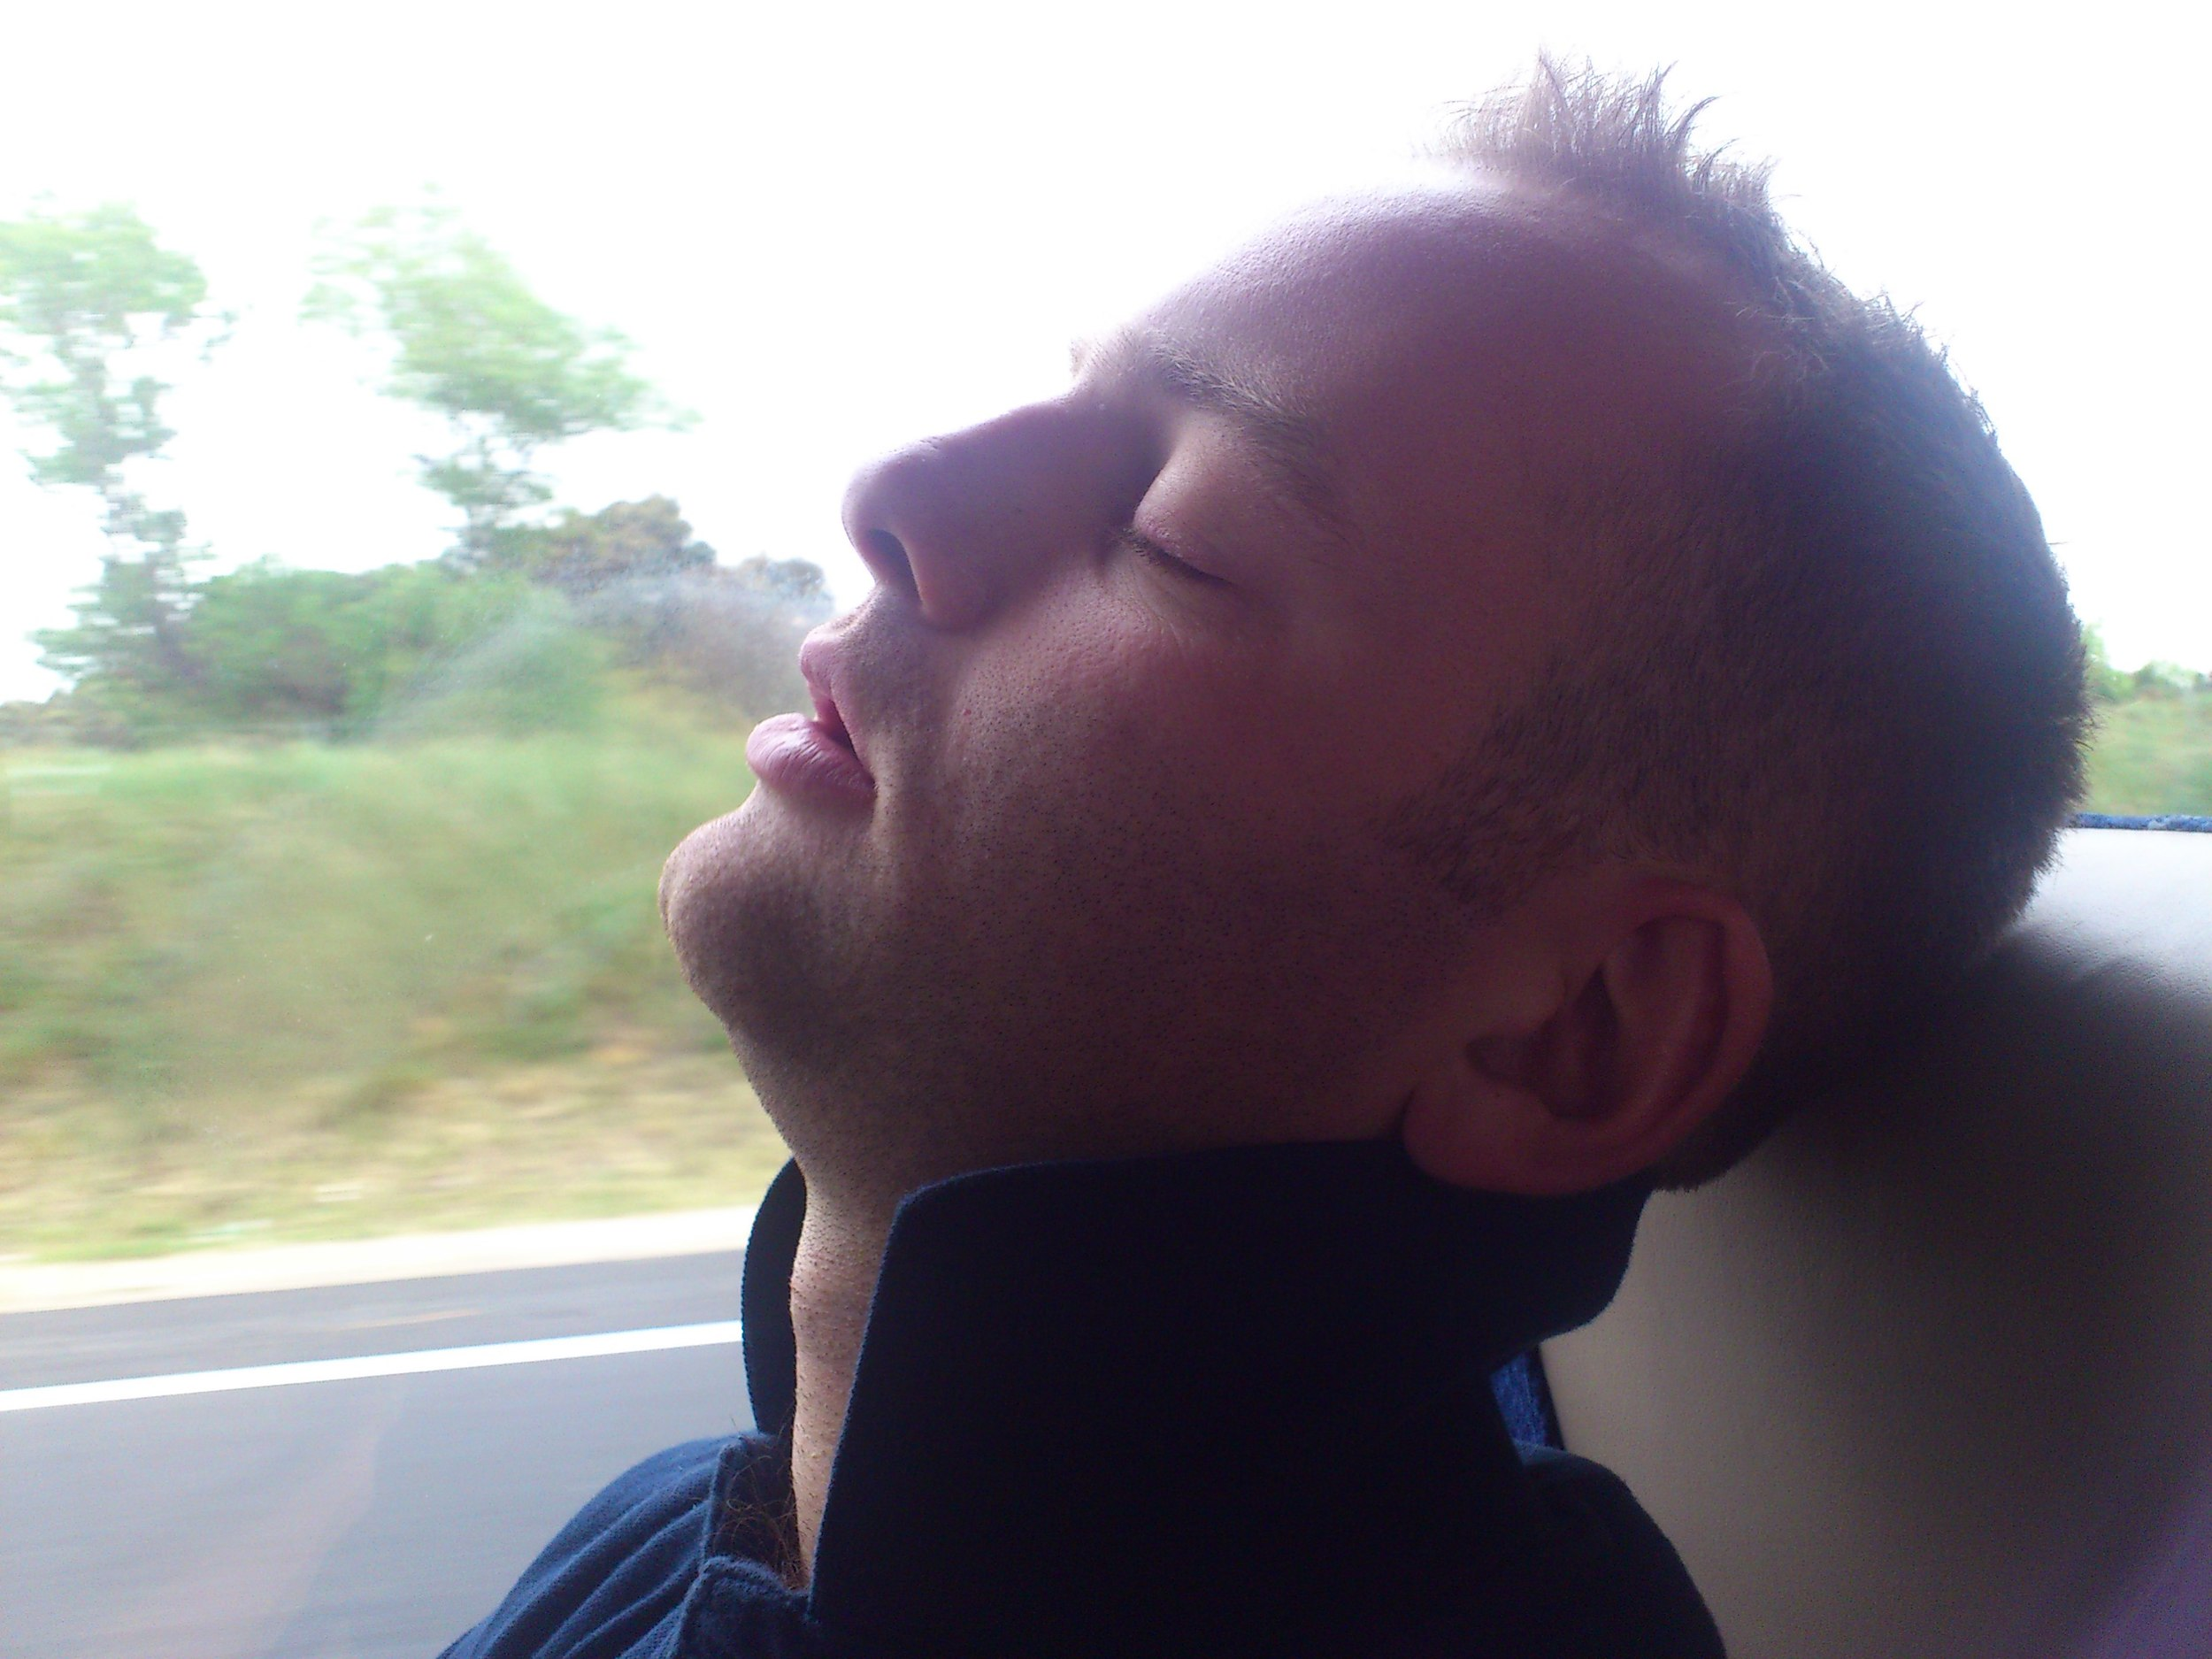 My husband after we had to get a 0600 flight from Gatwick to get to European destination wedding.